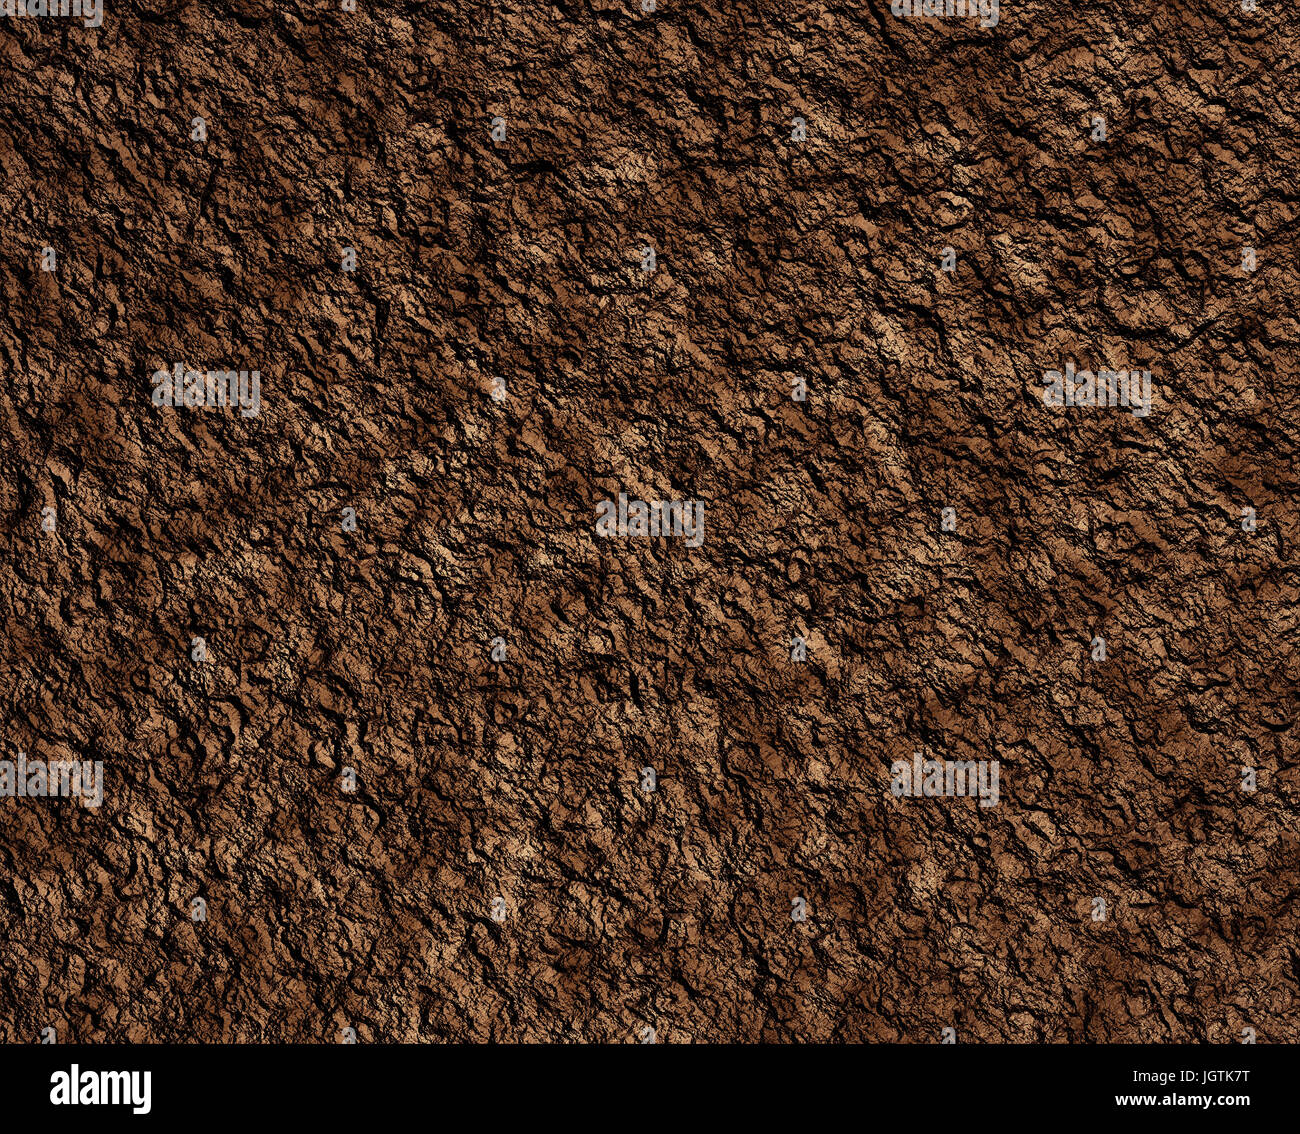 Stone texture illustration, or rust old surface texture. - Stock Image